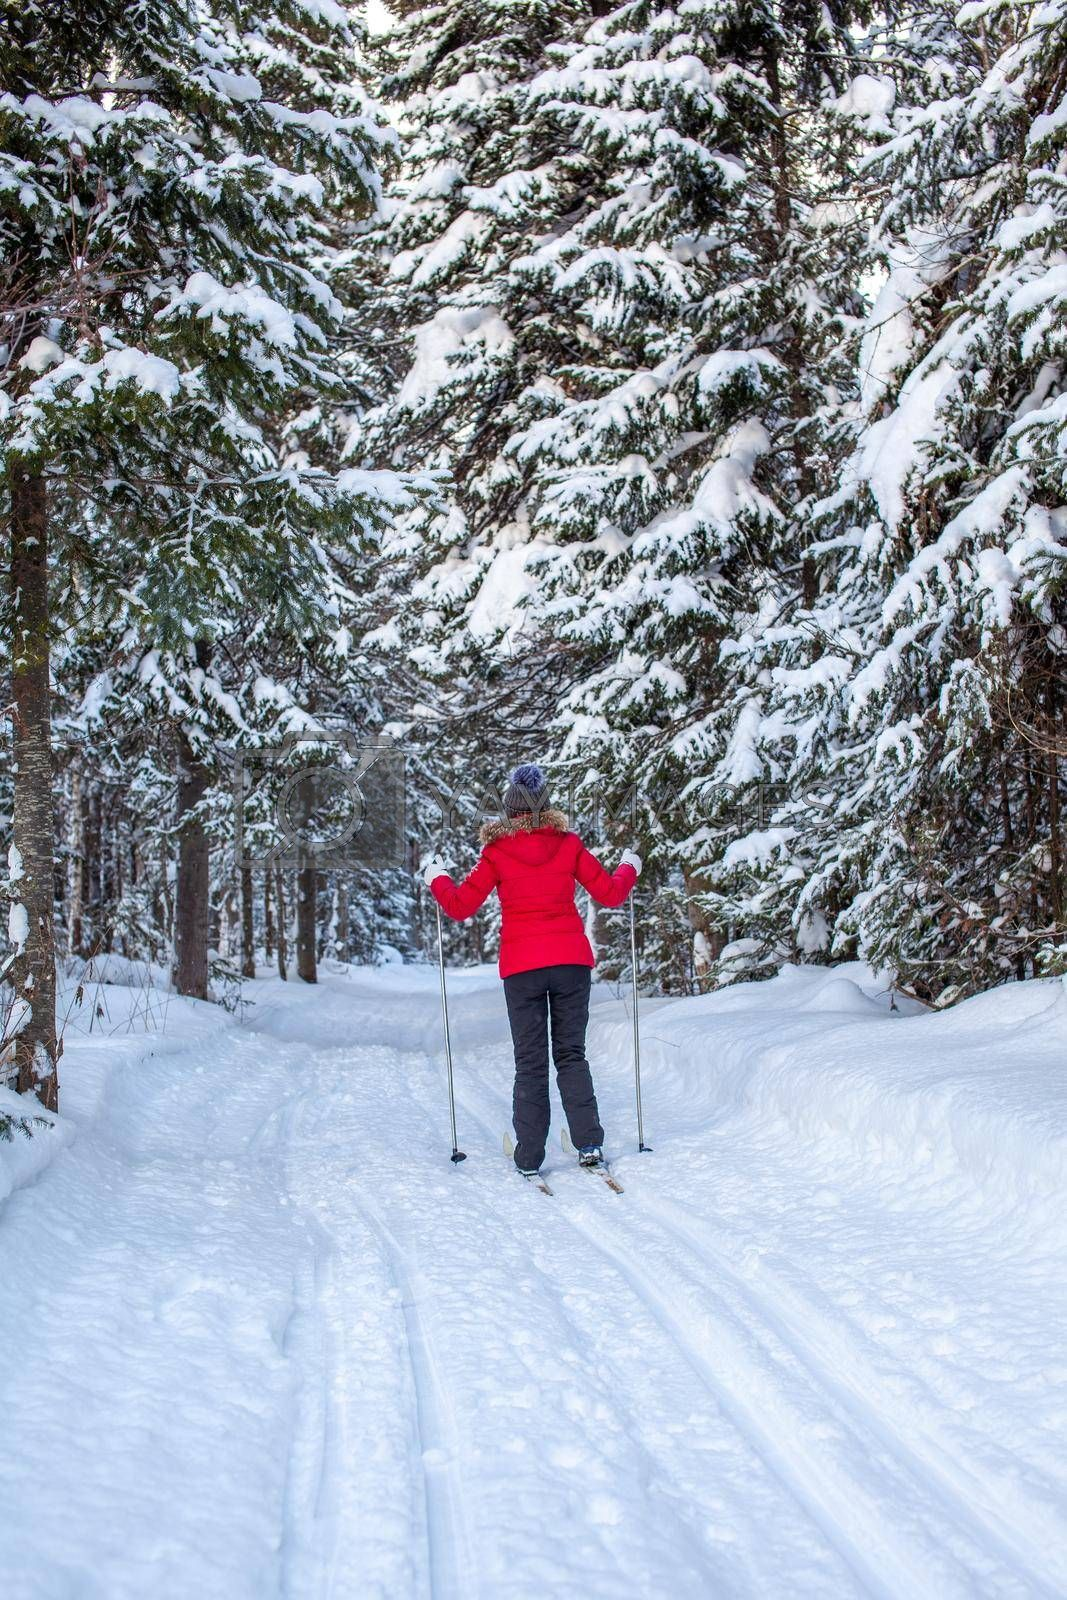 A girl in a red jacket goes skiing in a snowy forest in winter. The view from the back. Snow background with skis between the trees.